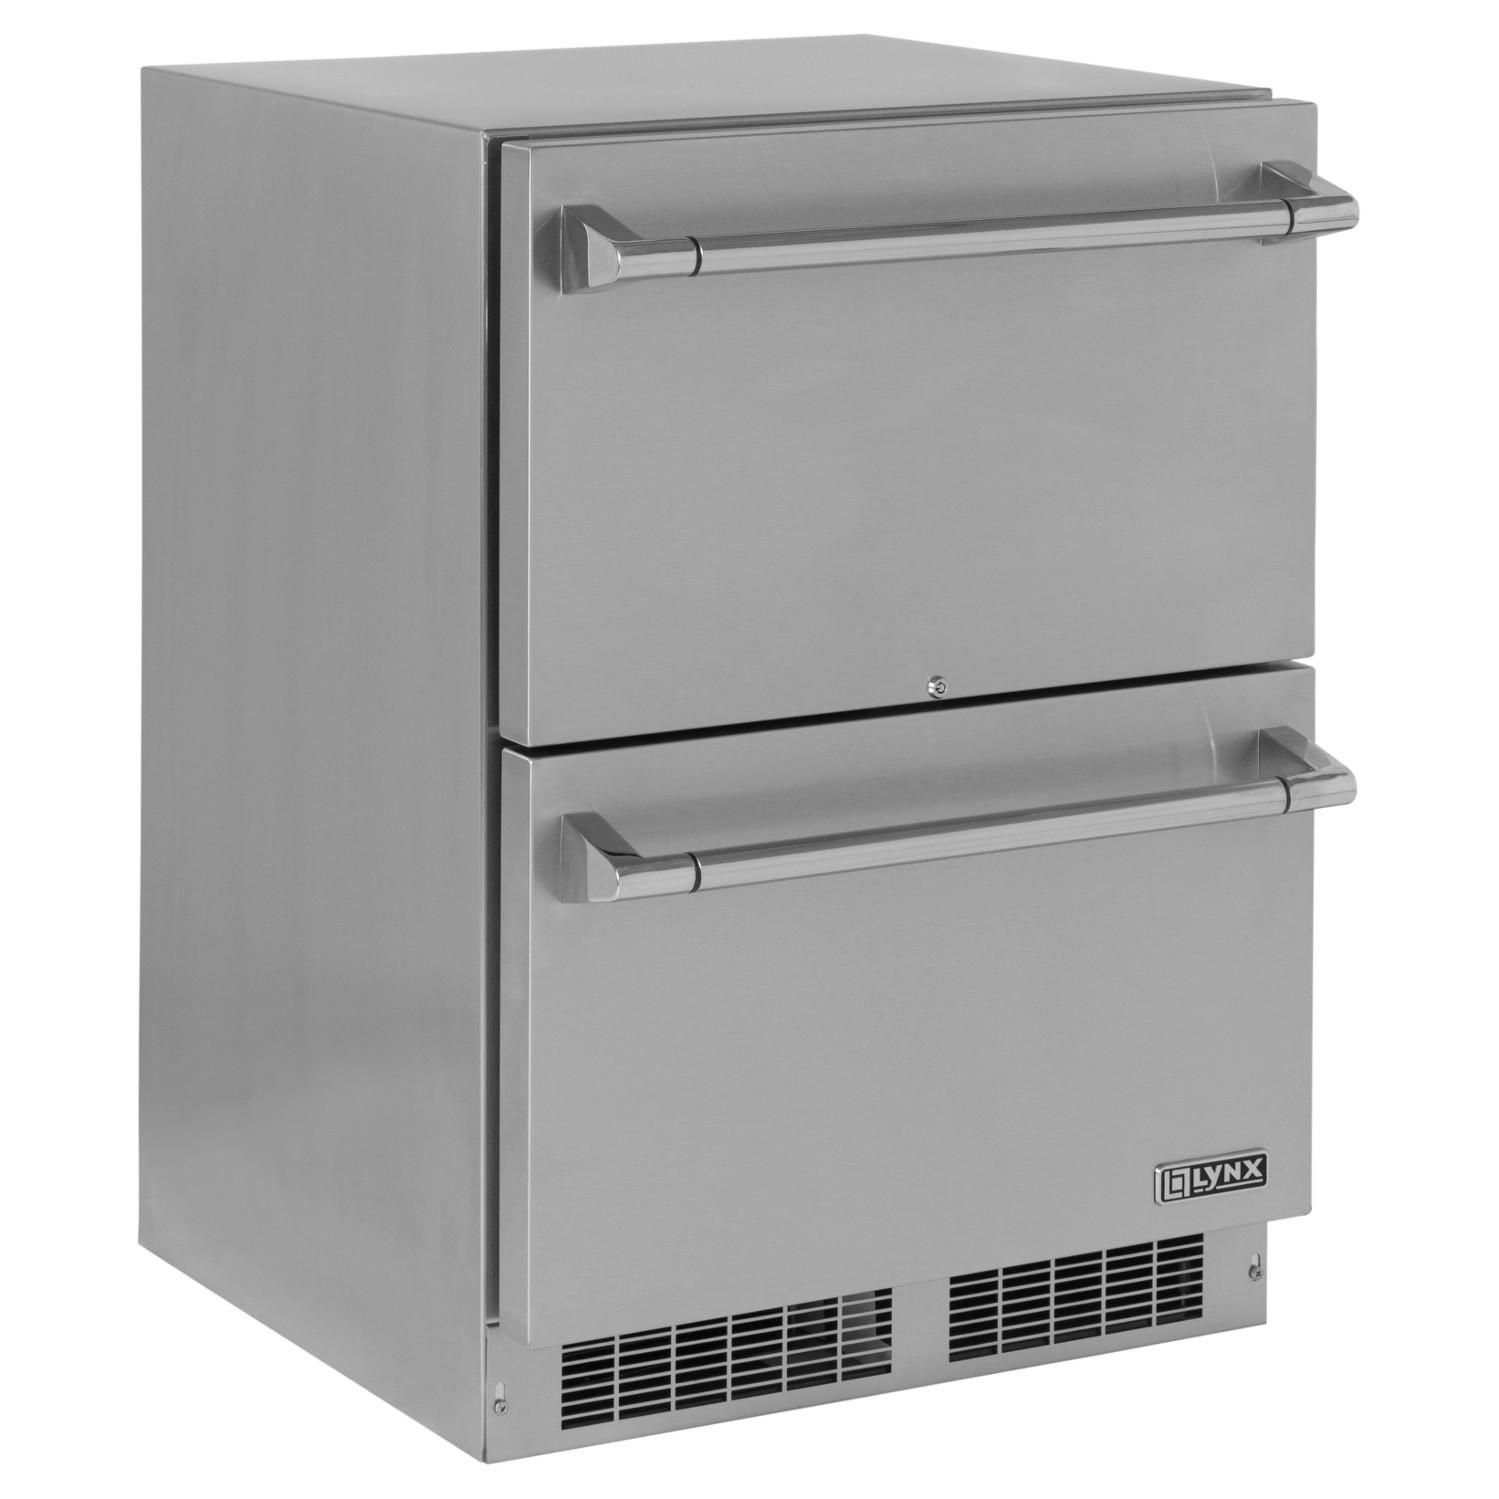 Lynx 24 5 0 Cu Ft Outdoor Rated Double Drawer Refrigerator Lm24dwr Outdoor Refrigerator Refrigerator Drawers